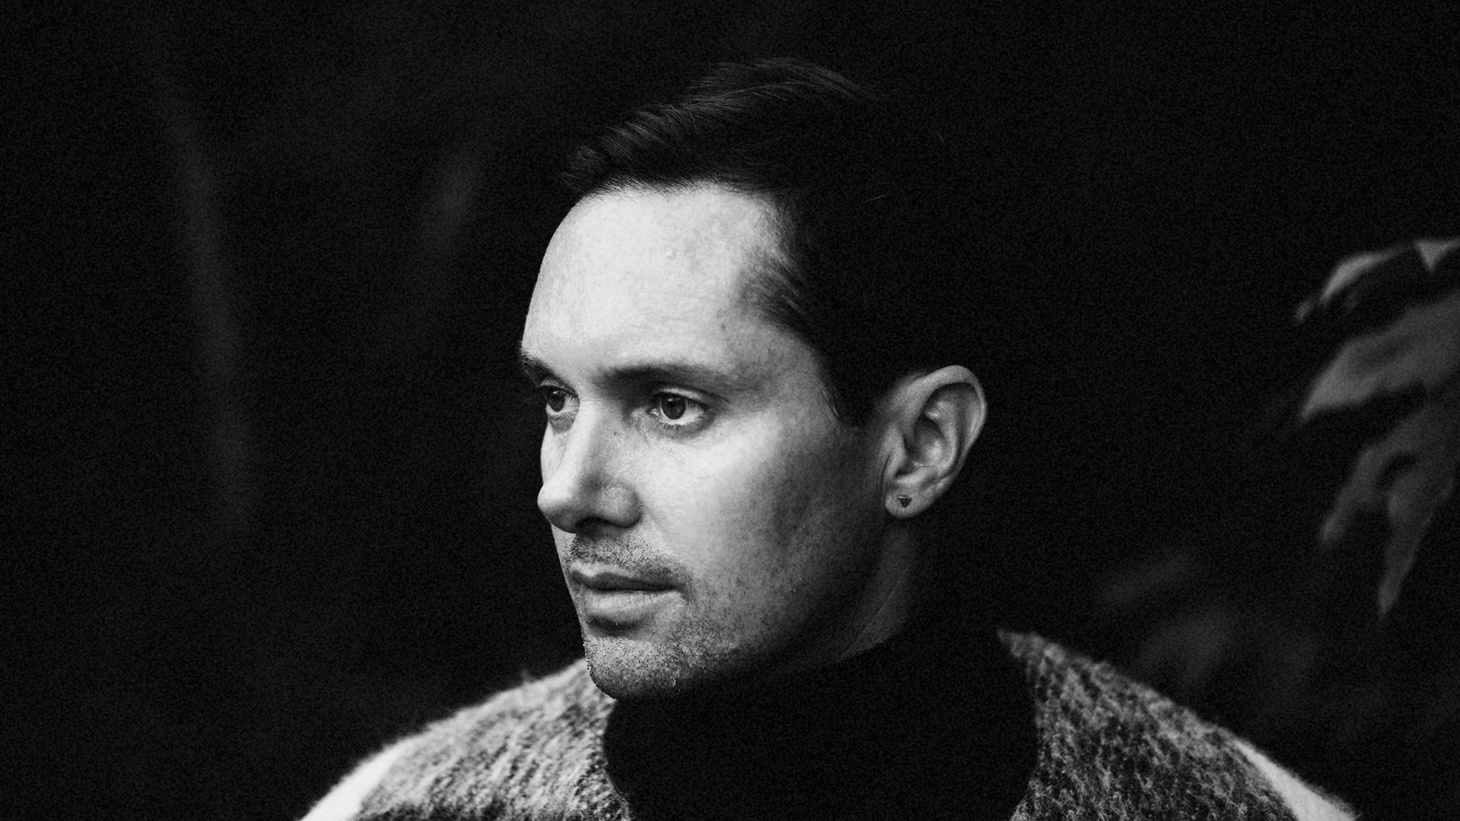 Accolades have been pouring in for Rhye's latest album, a collection that oozes with their brand of seductive, soul-pop. Singing over a whisper, front man Milosh epitomizes boudoir anthems that beckon with intimate lyrics.